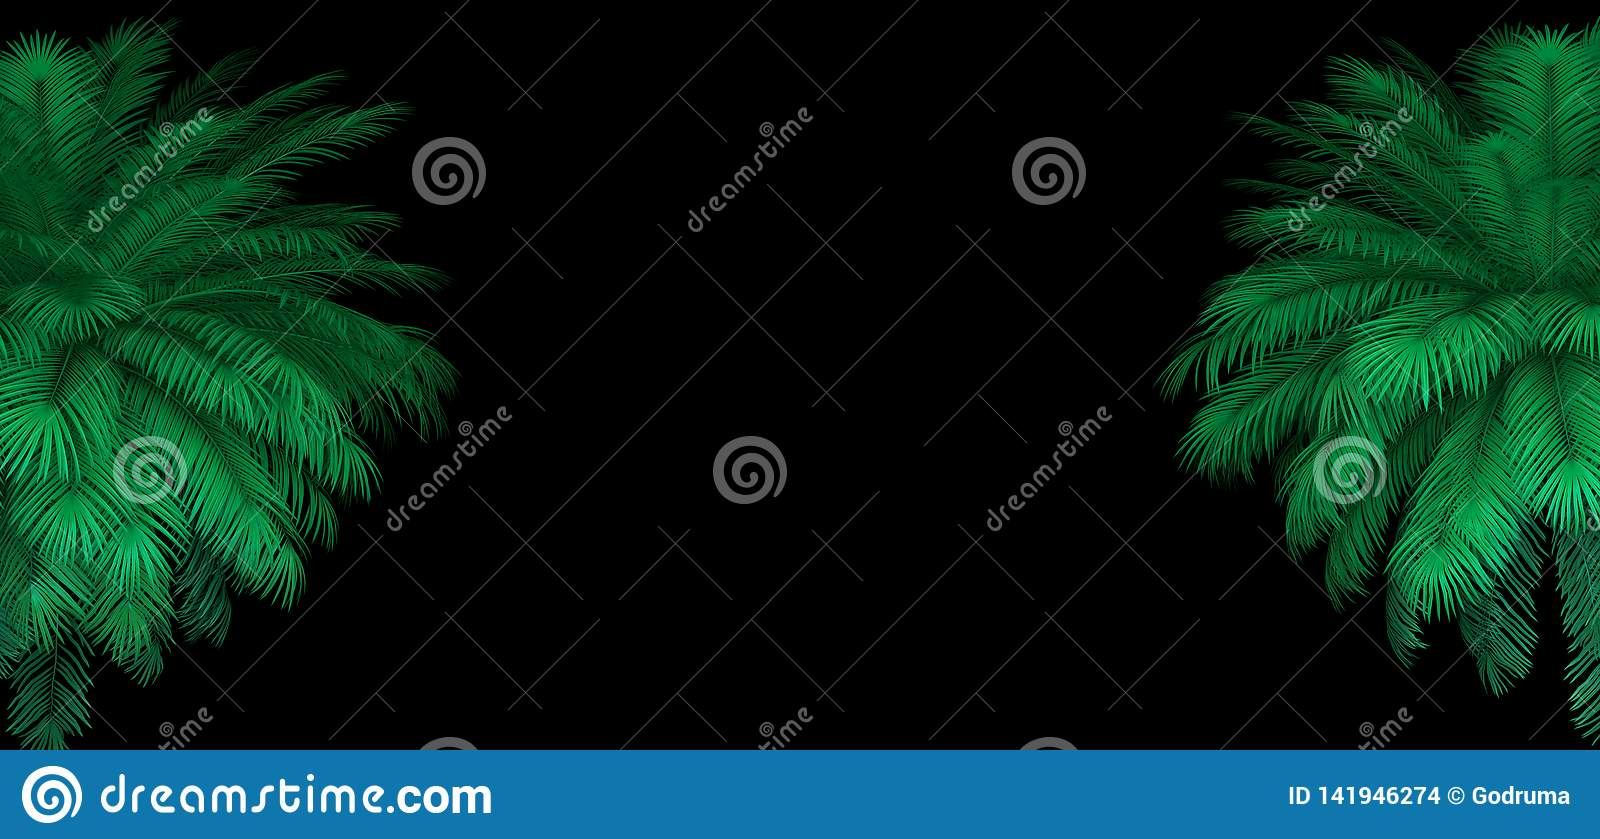 3d Render Of Neon Palm Leaves On The Black  Banner Design